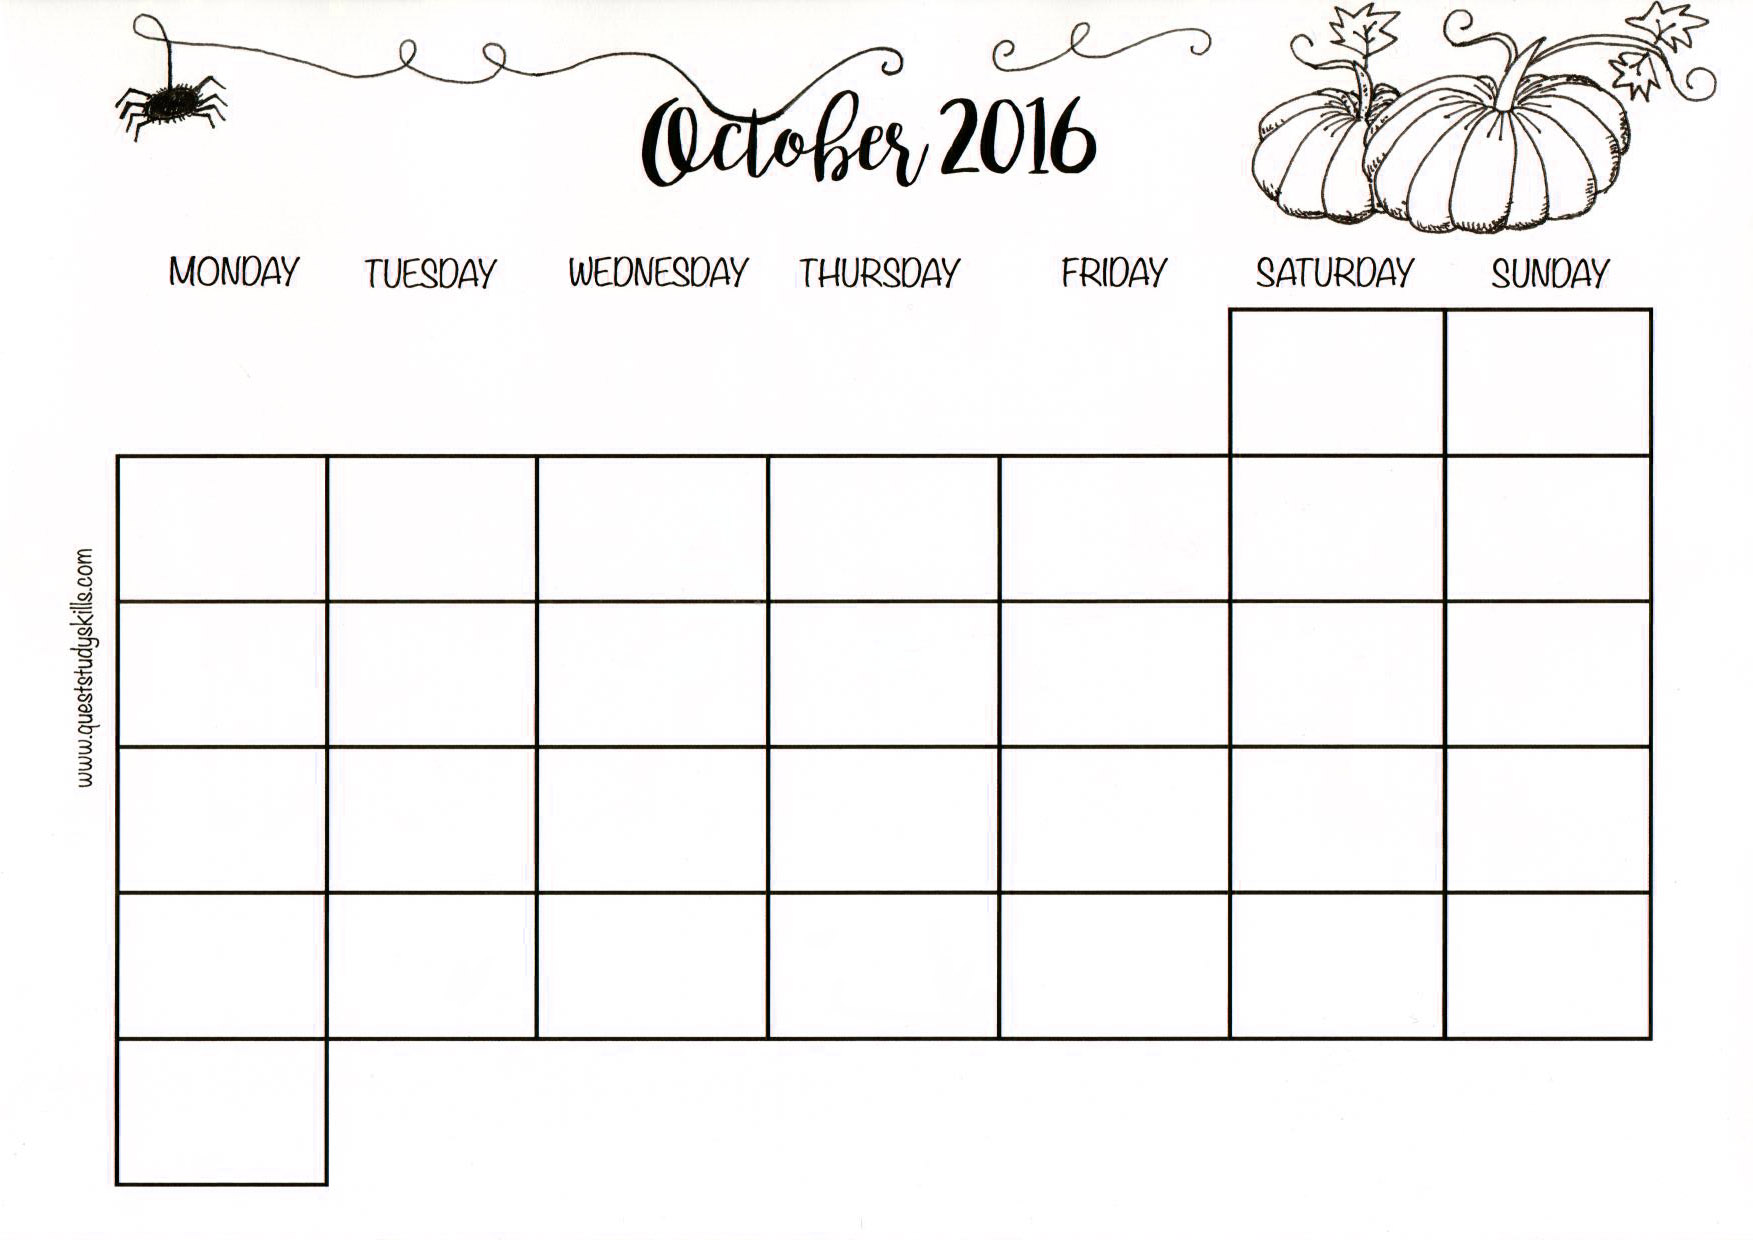 Month Plan Printable for October 2016 !!